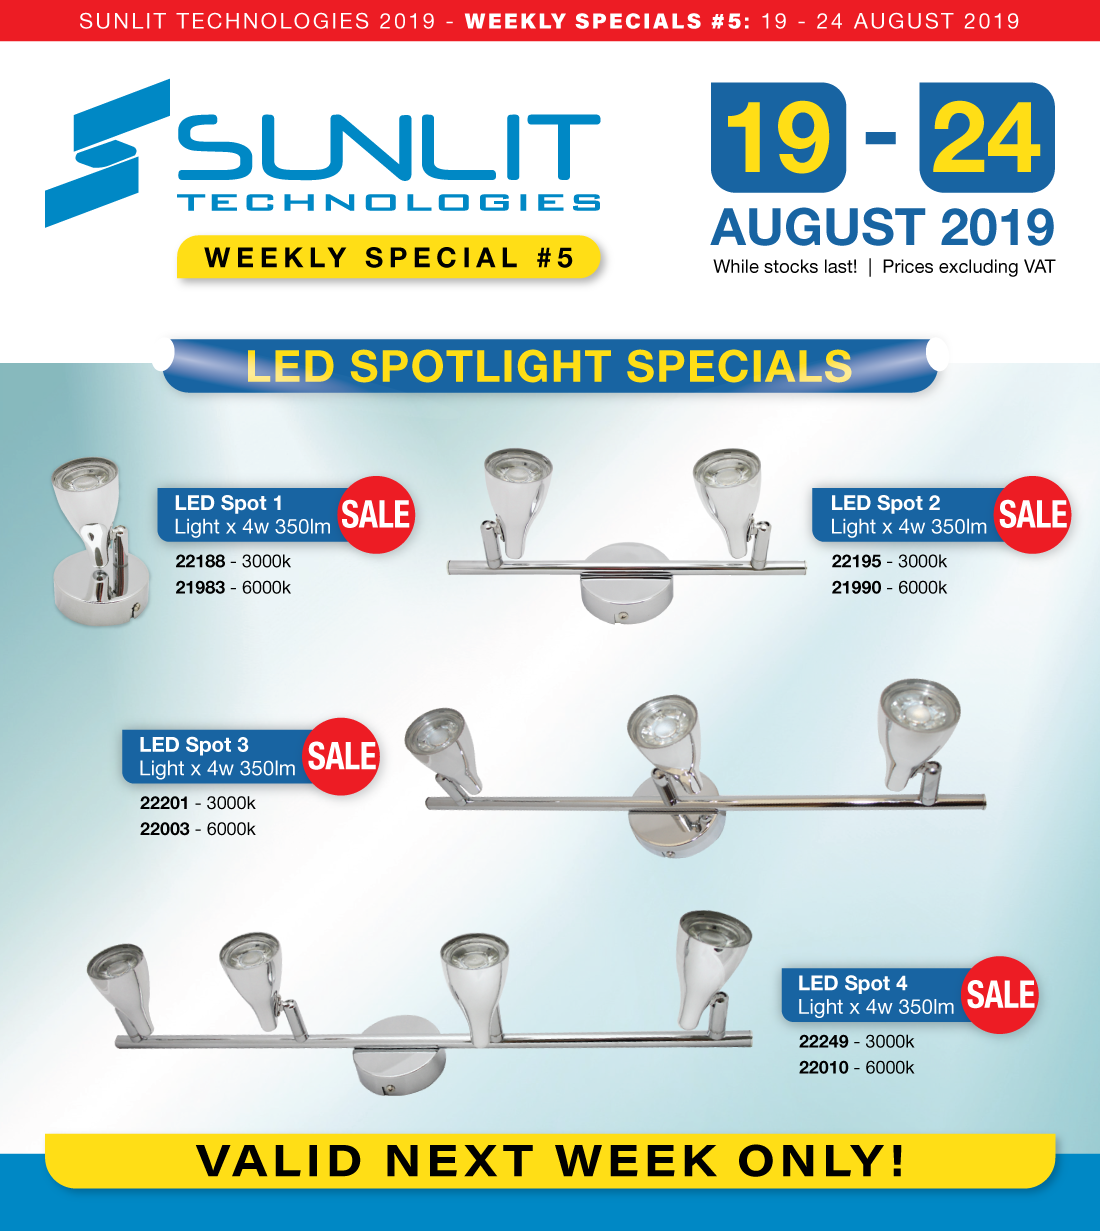 Sunlit-BLOG-Weekly-specials-#5-Aug-19-24